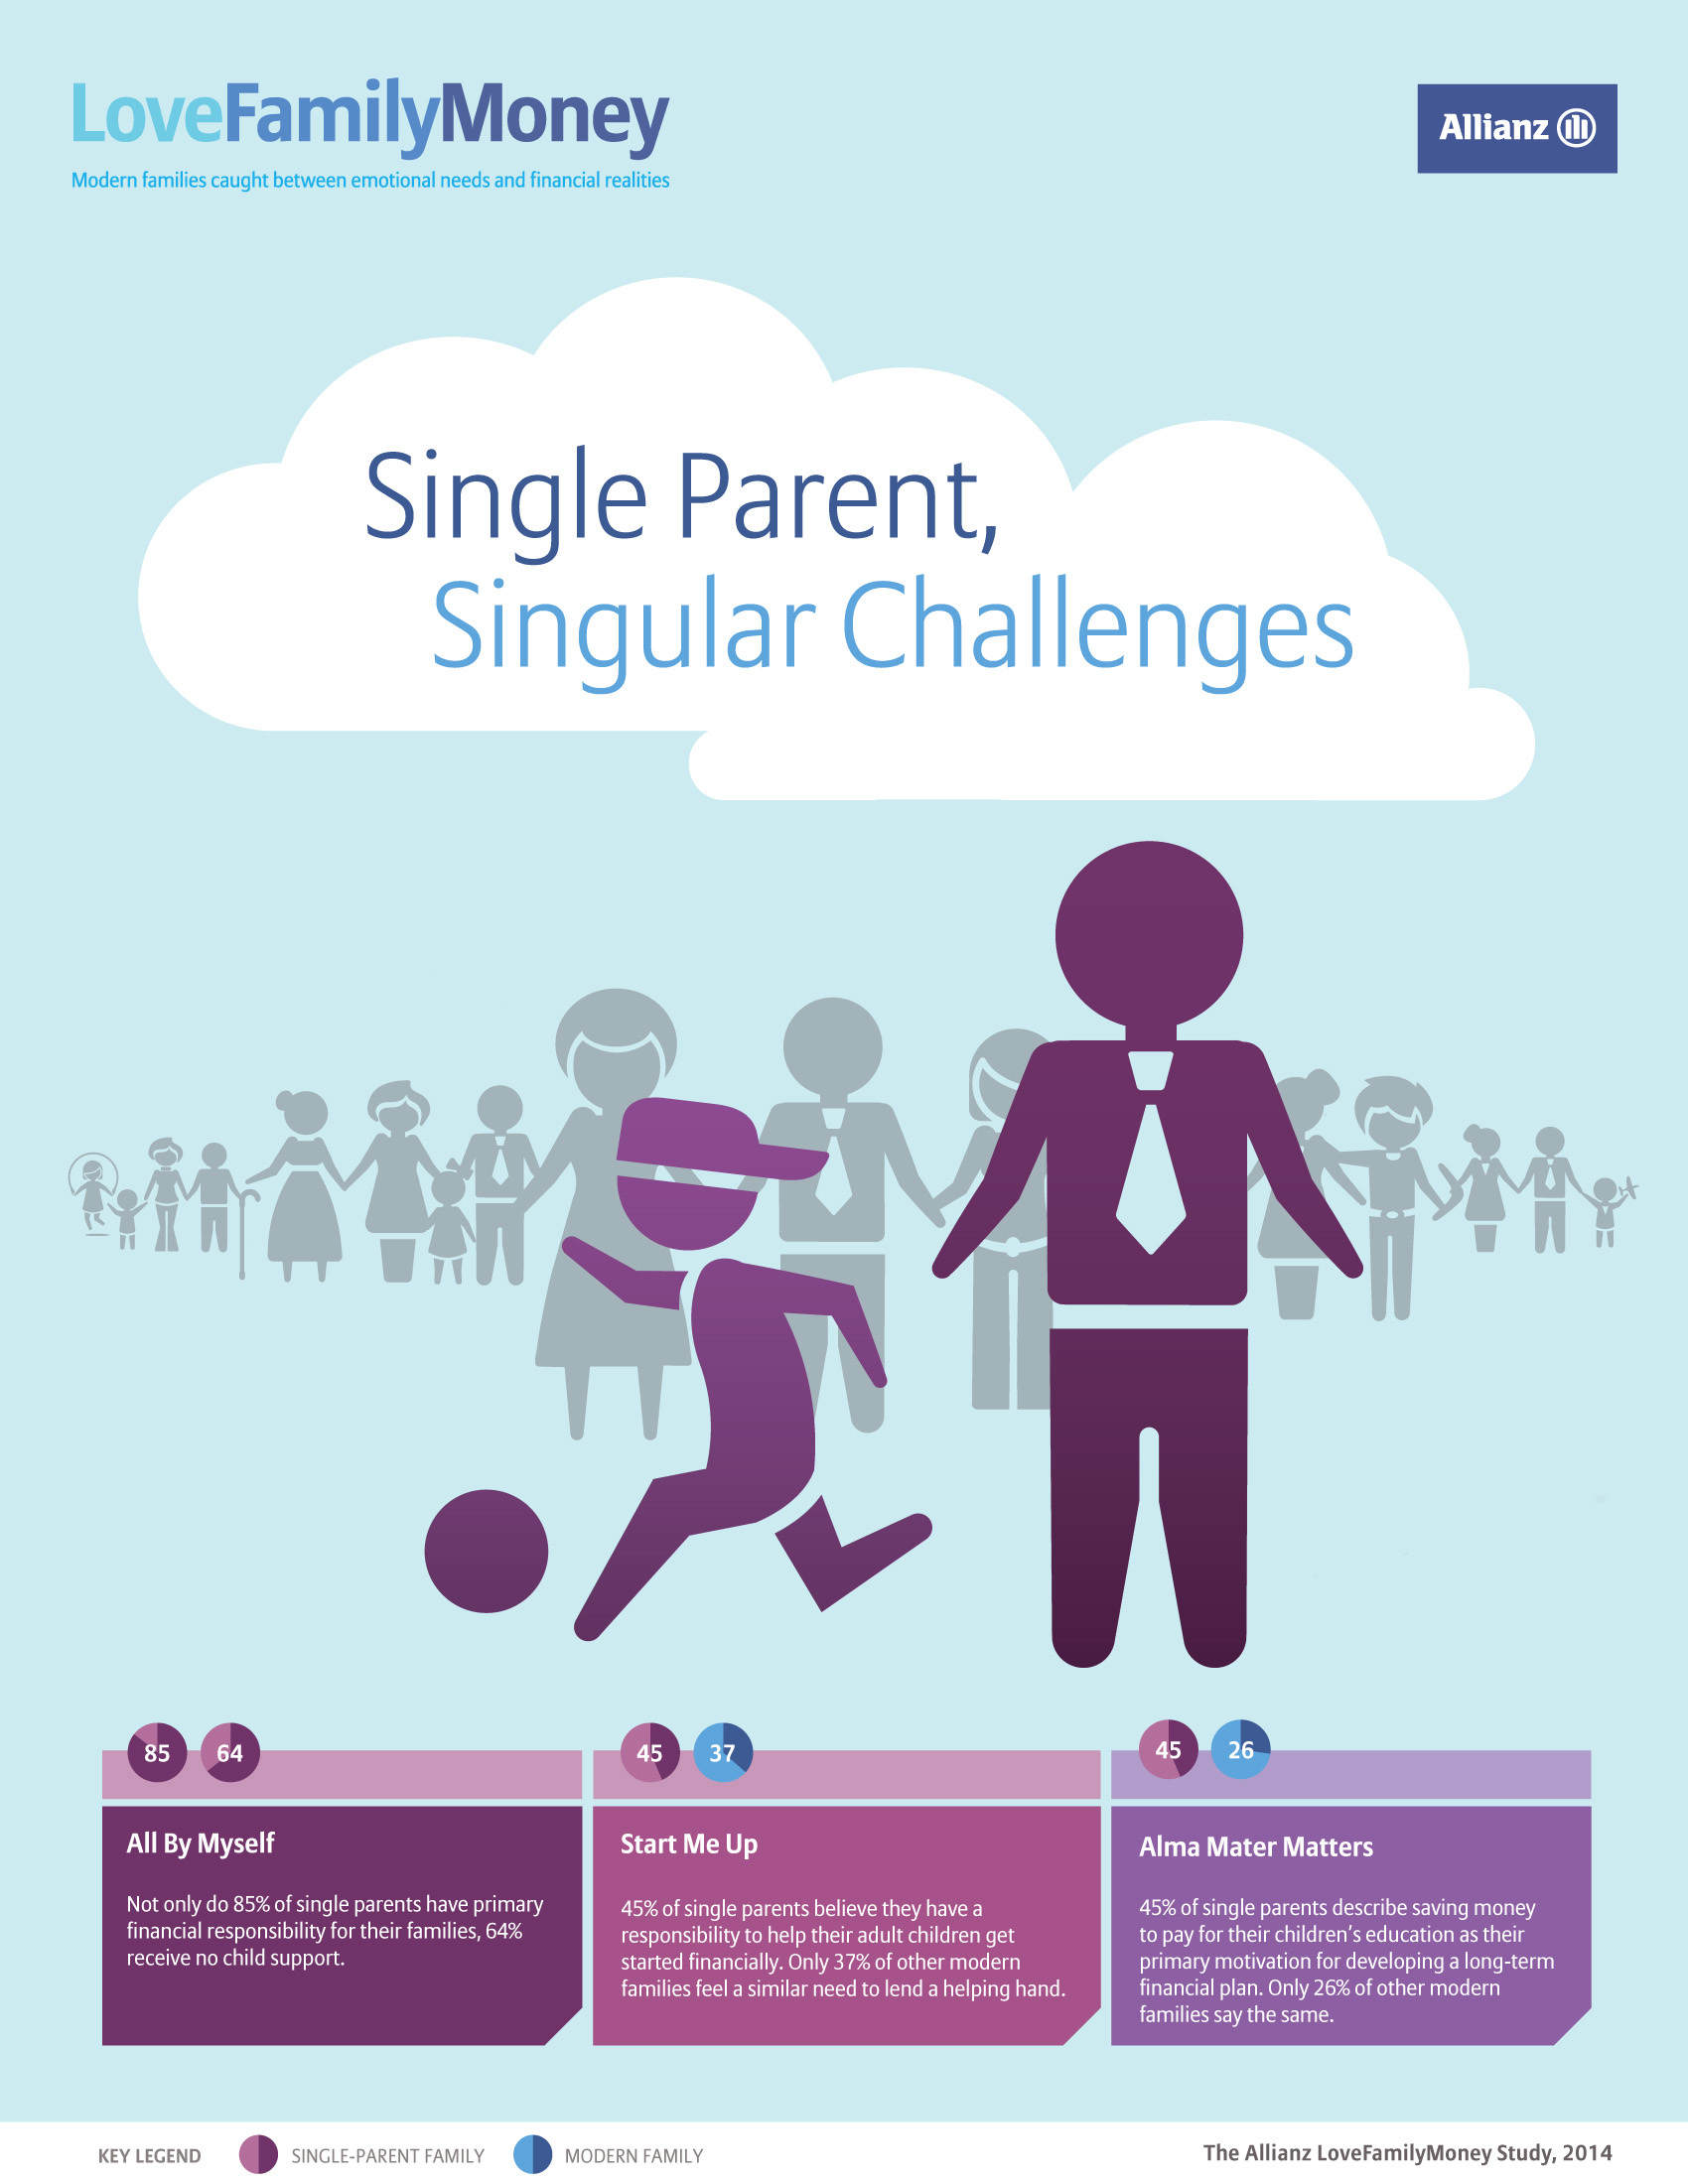 College Savings Take Priority for Today's Single Parents; Allianz LoveFamilyMoney Study Finds Children are Source of Financial Stress and Motivation (Graphic: Allianz)